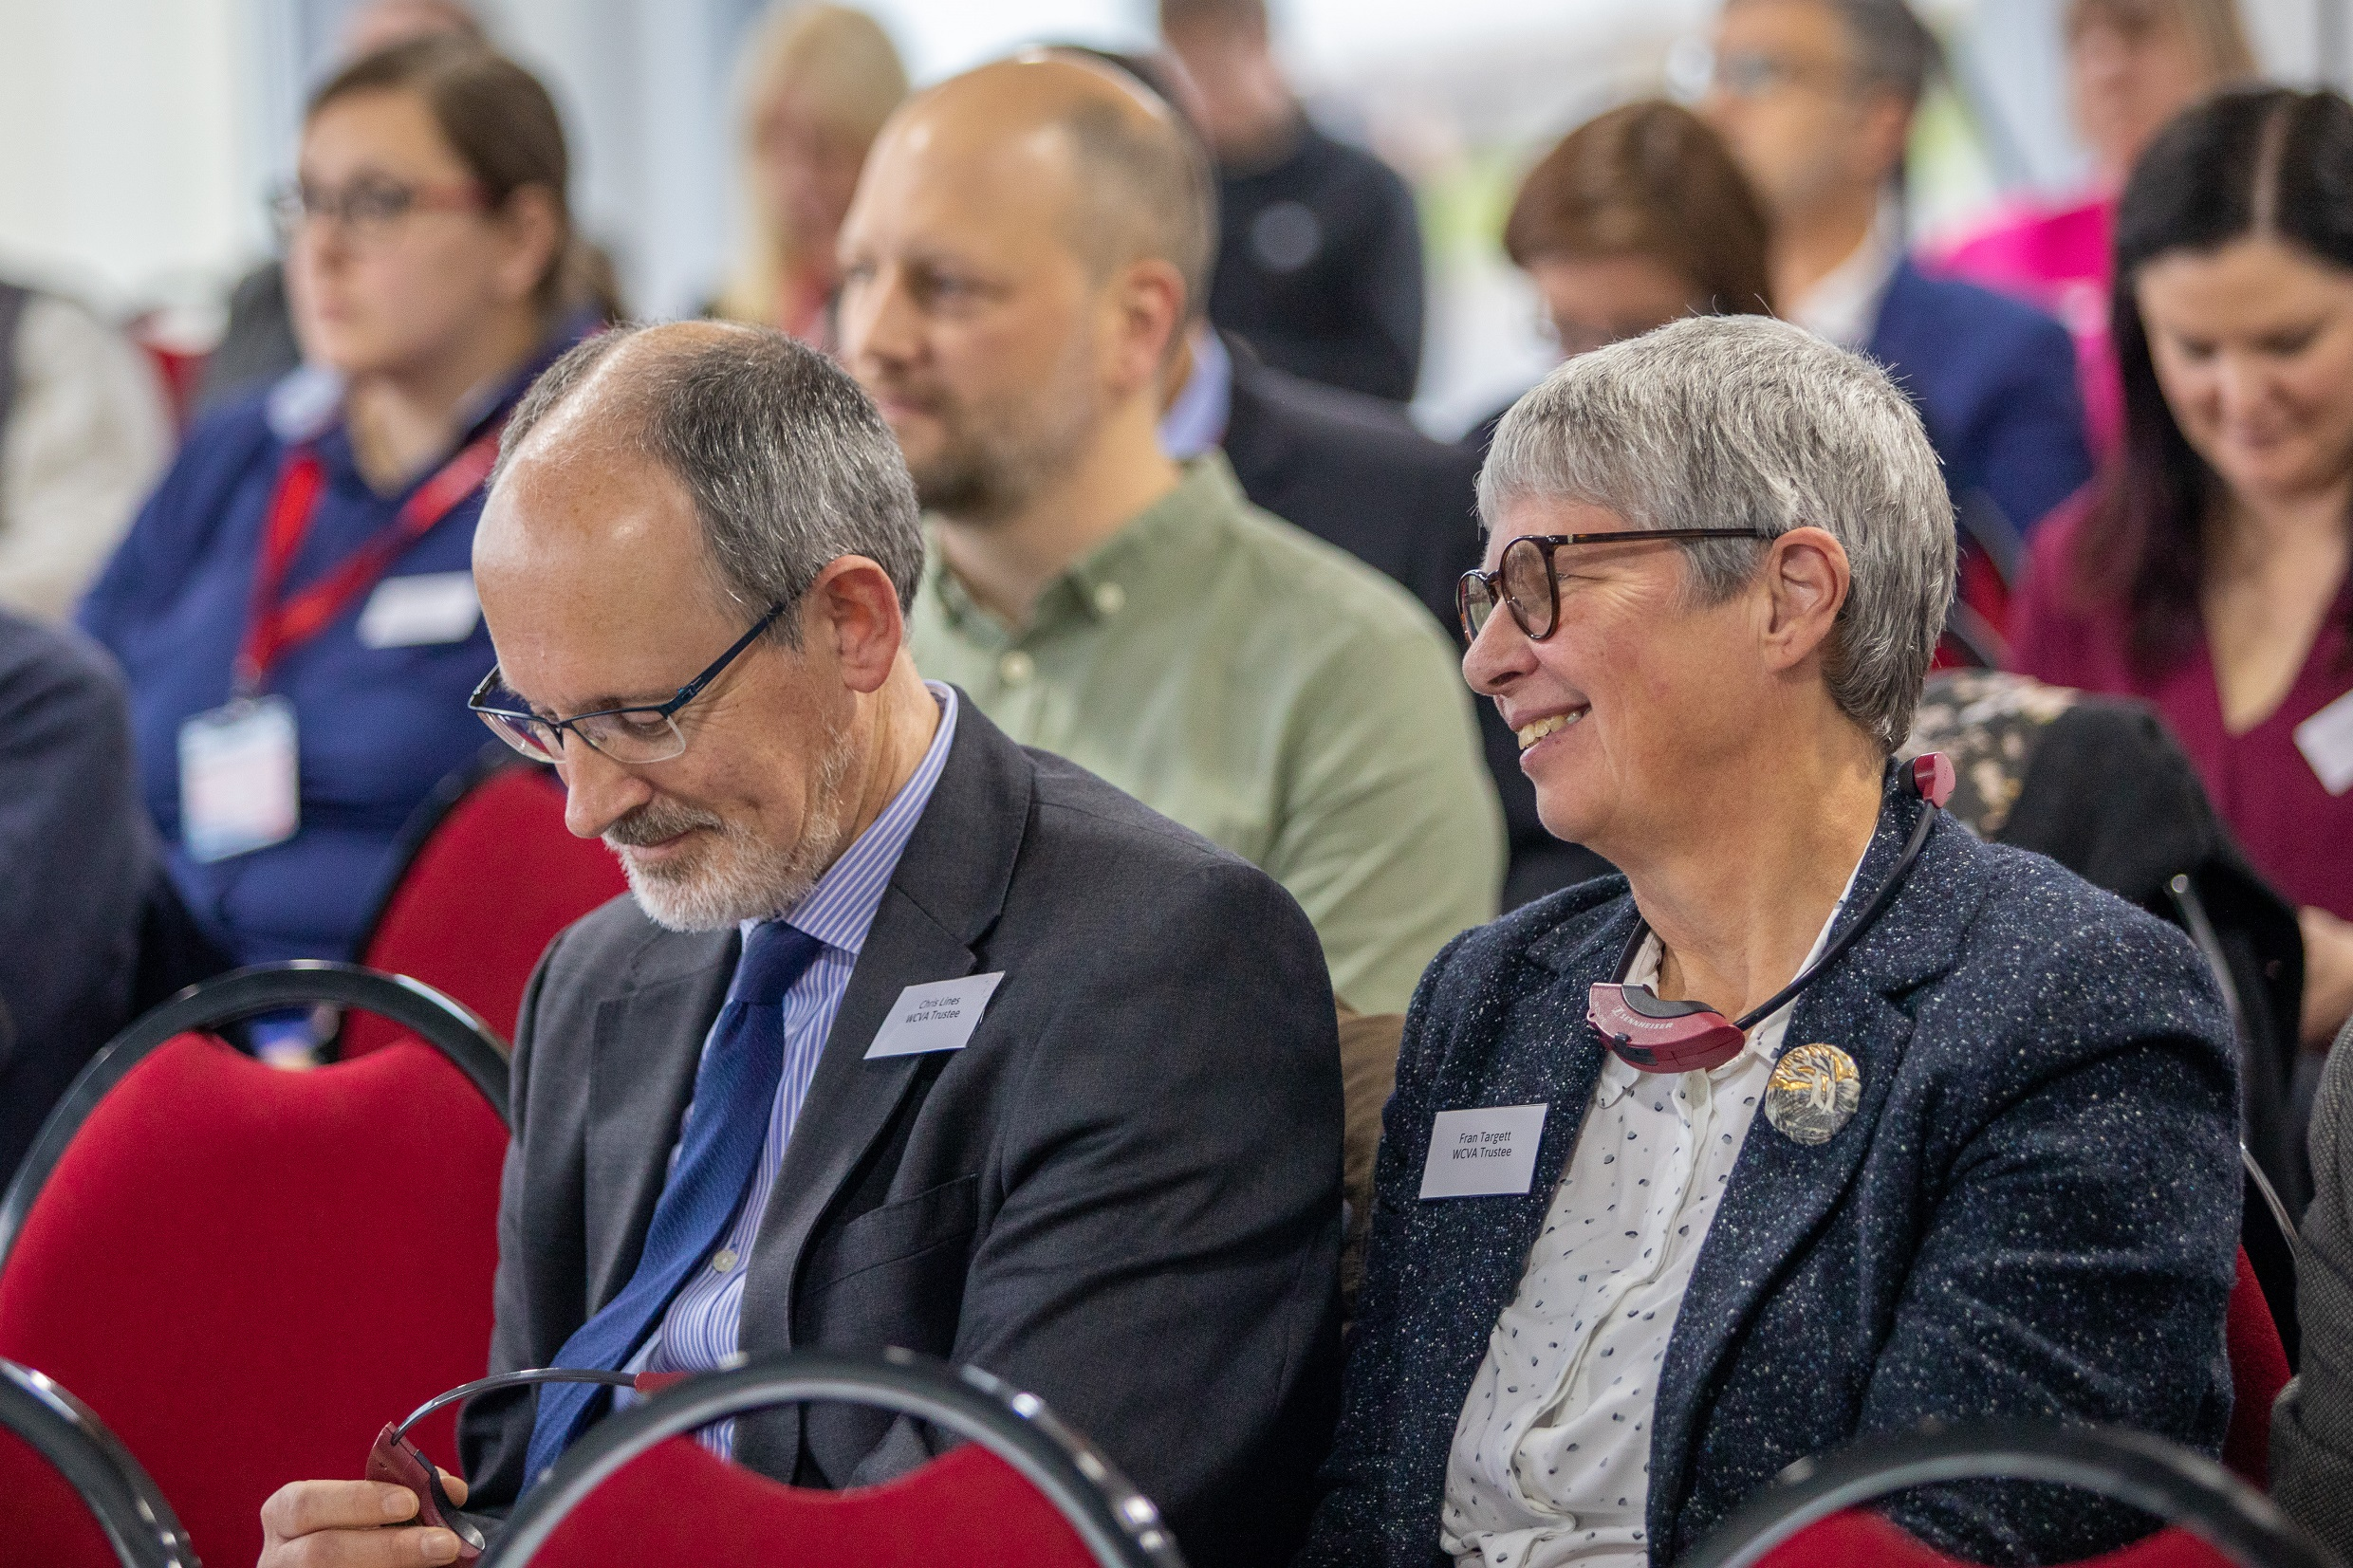 The audience at WCVA's AGM and Annual Lecture 2019. People are sat in rows and a man an woman at the forefront of the photo are smiling